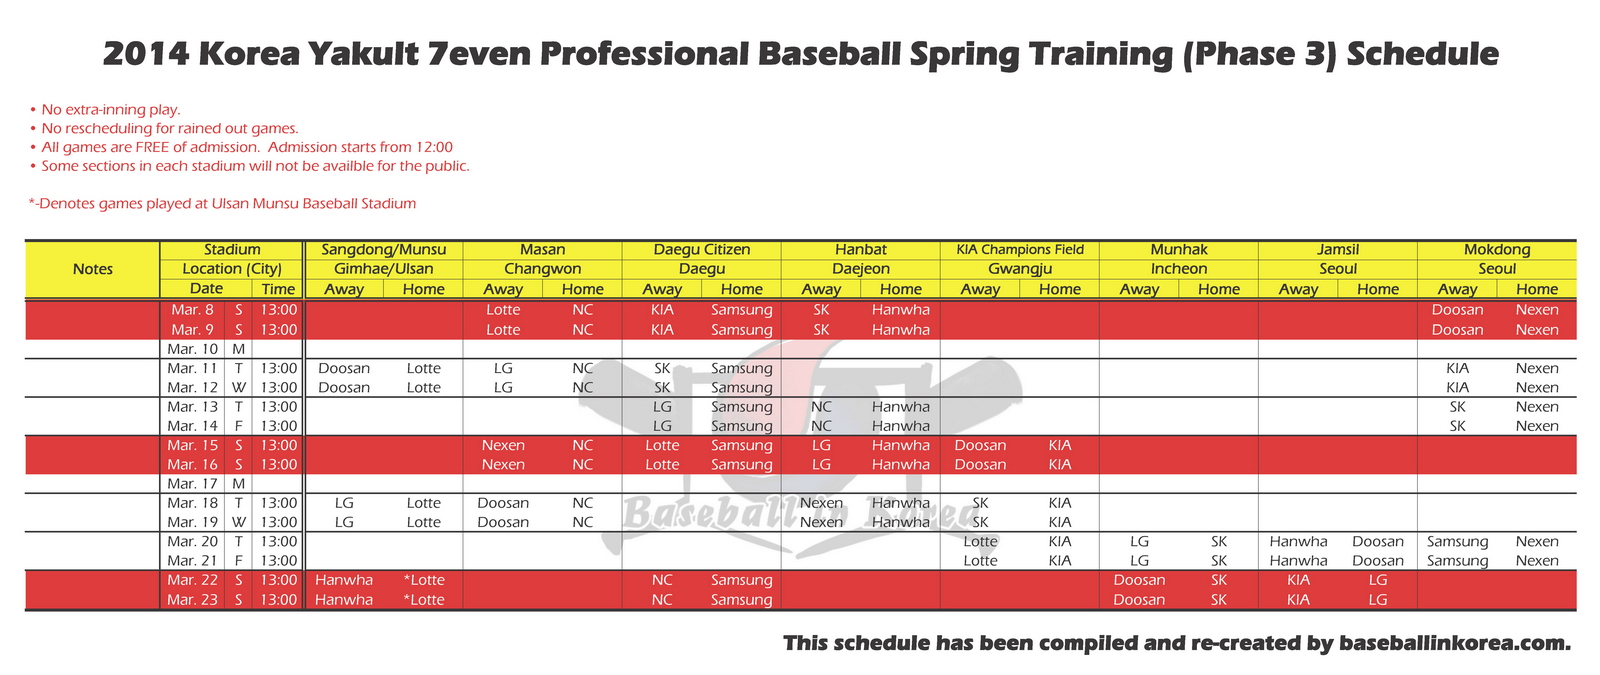 2014 Spring Tranining Schedule